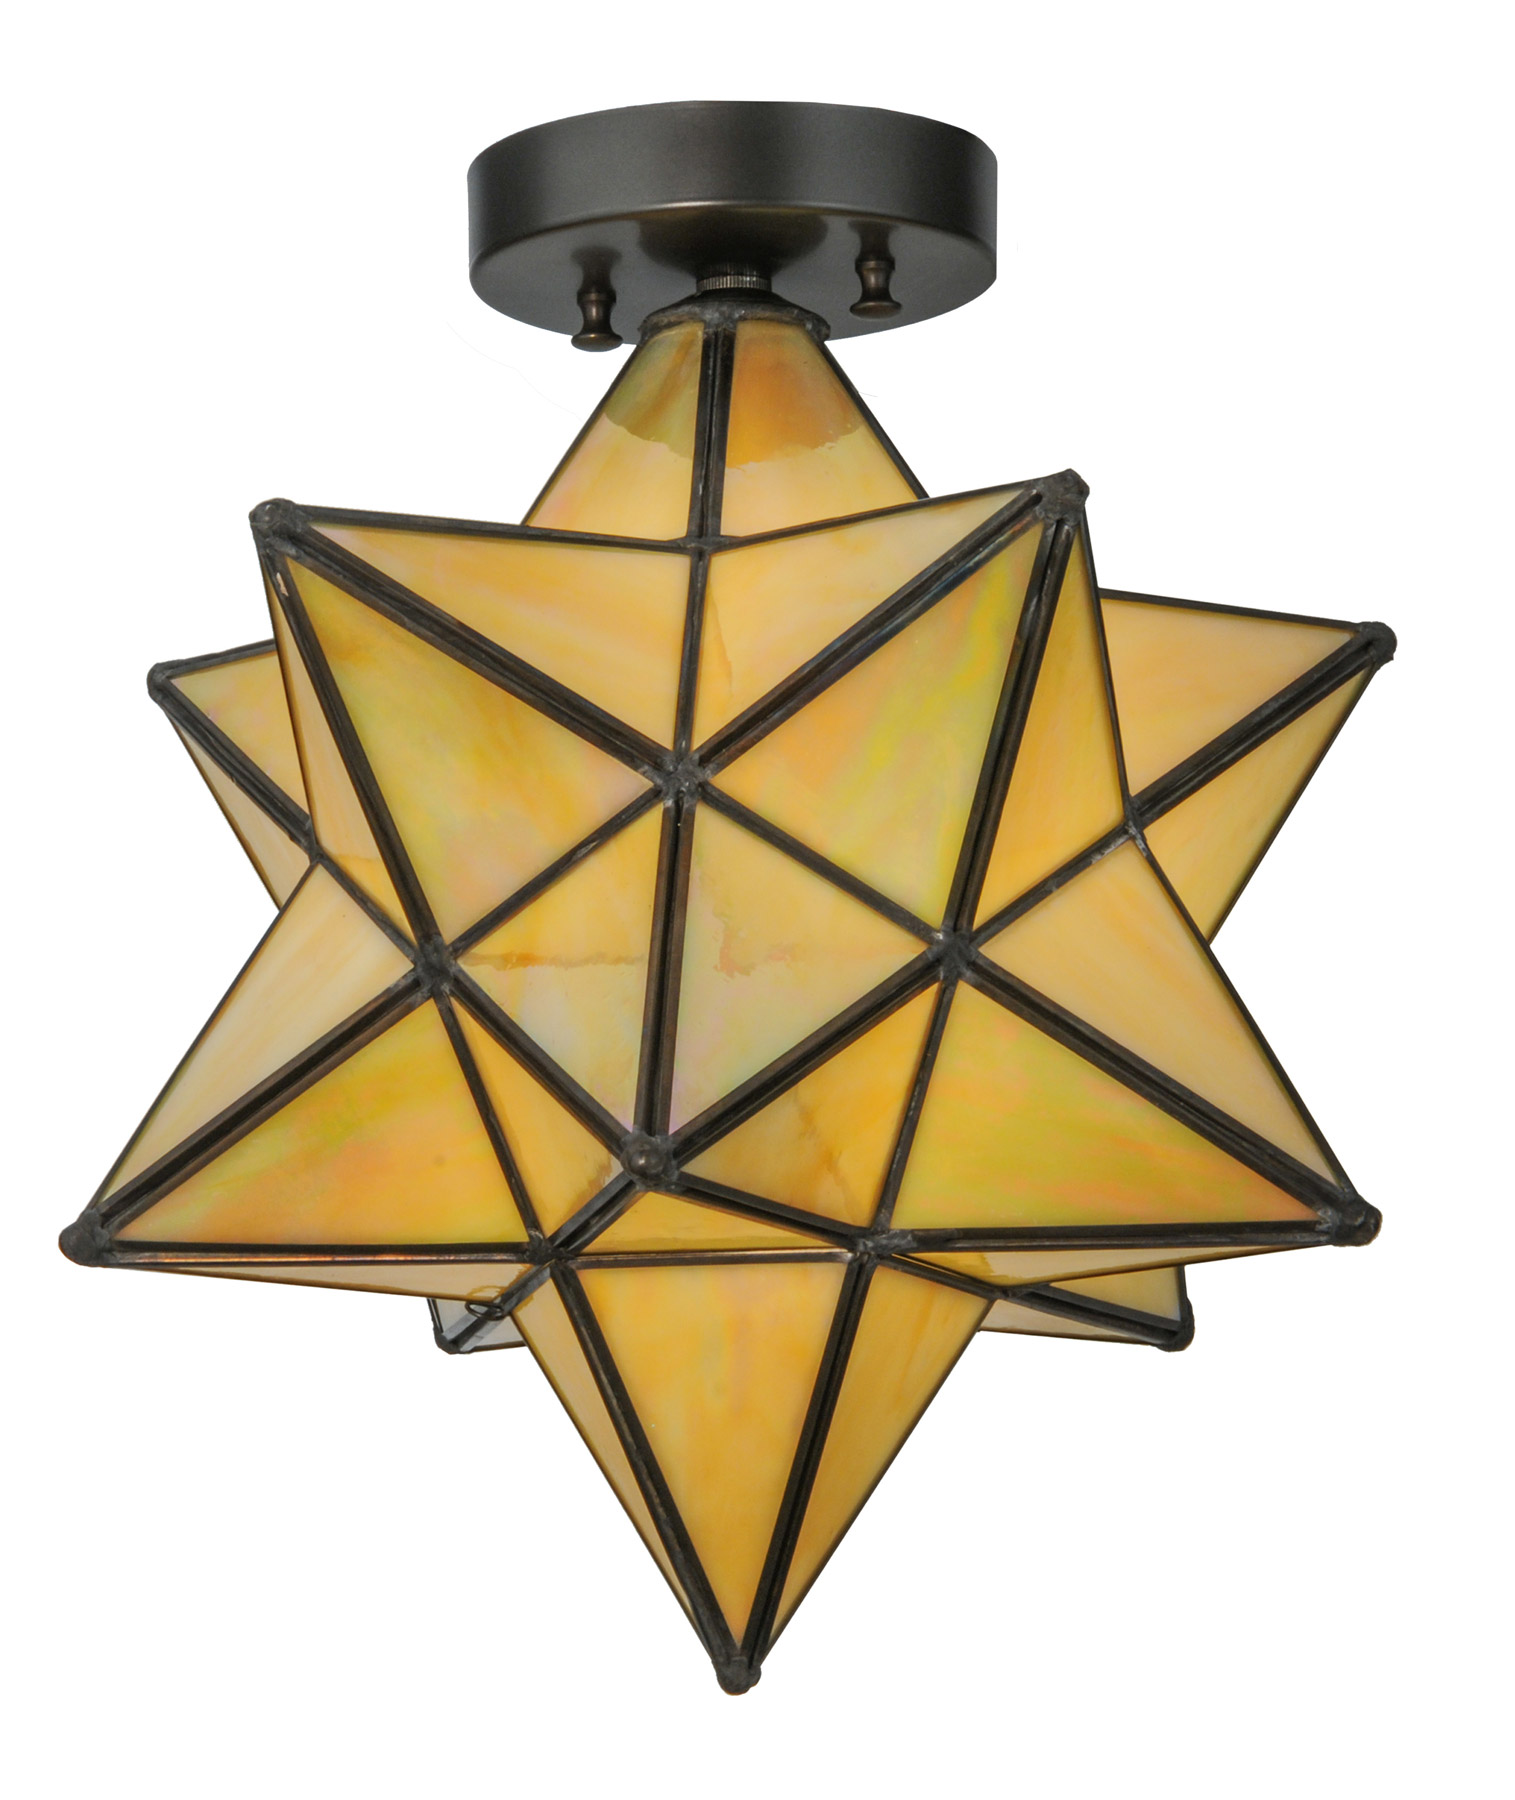 Meyda 148883 moravian star flush mount ceiling fixture aloadofball Image collections